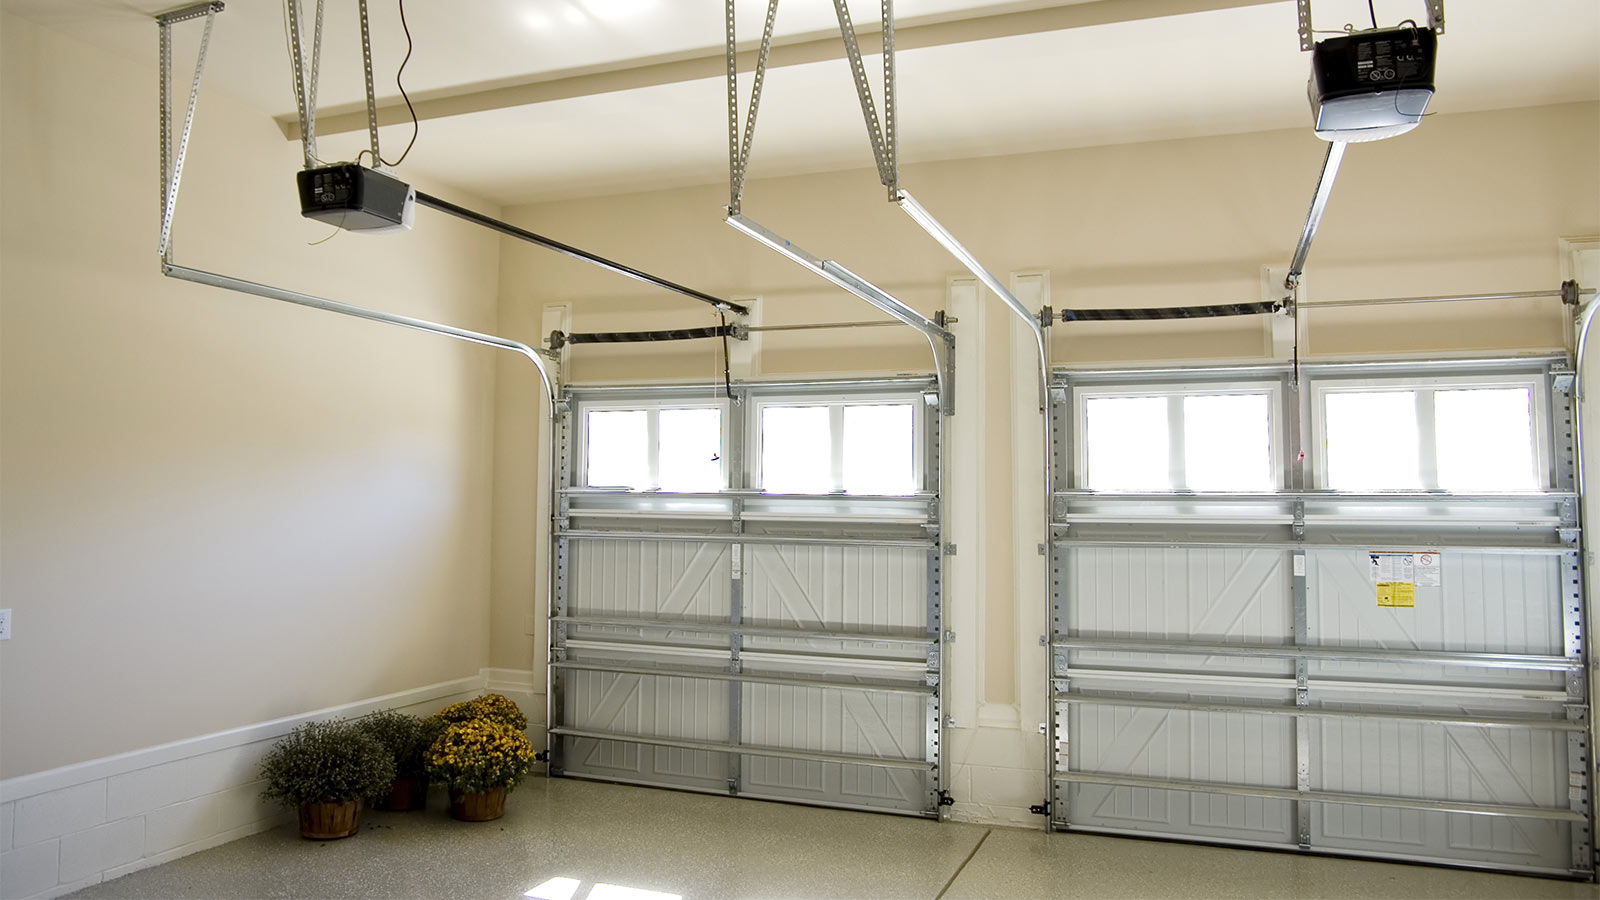 Sectional Garage Doors from Fire Shutters Berkshire suppliers.